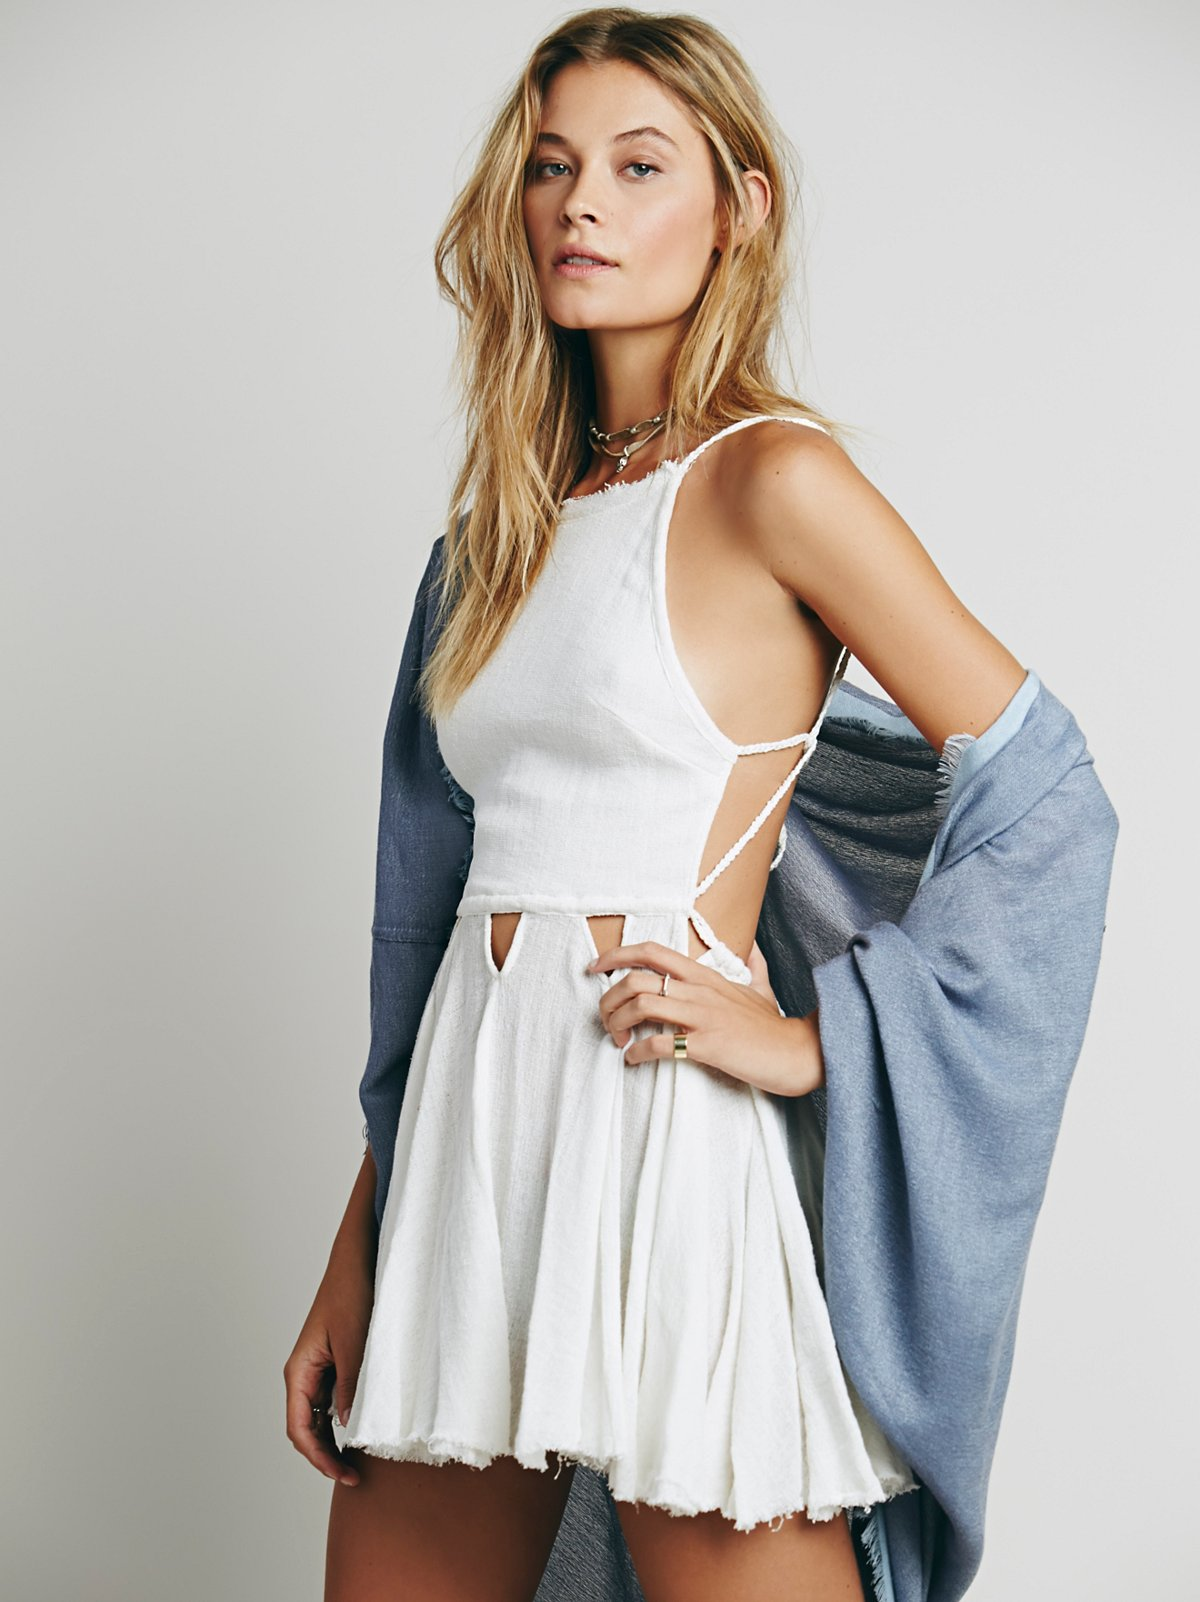 Endless Summer Live For Your Smile Dress At Free People